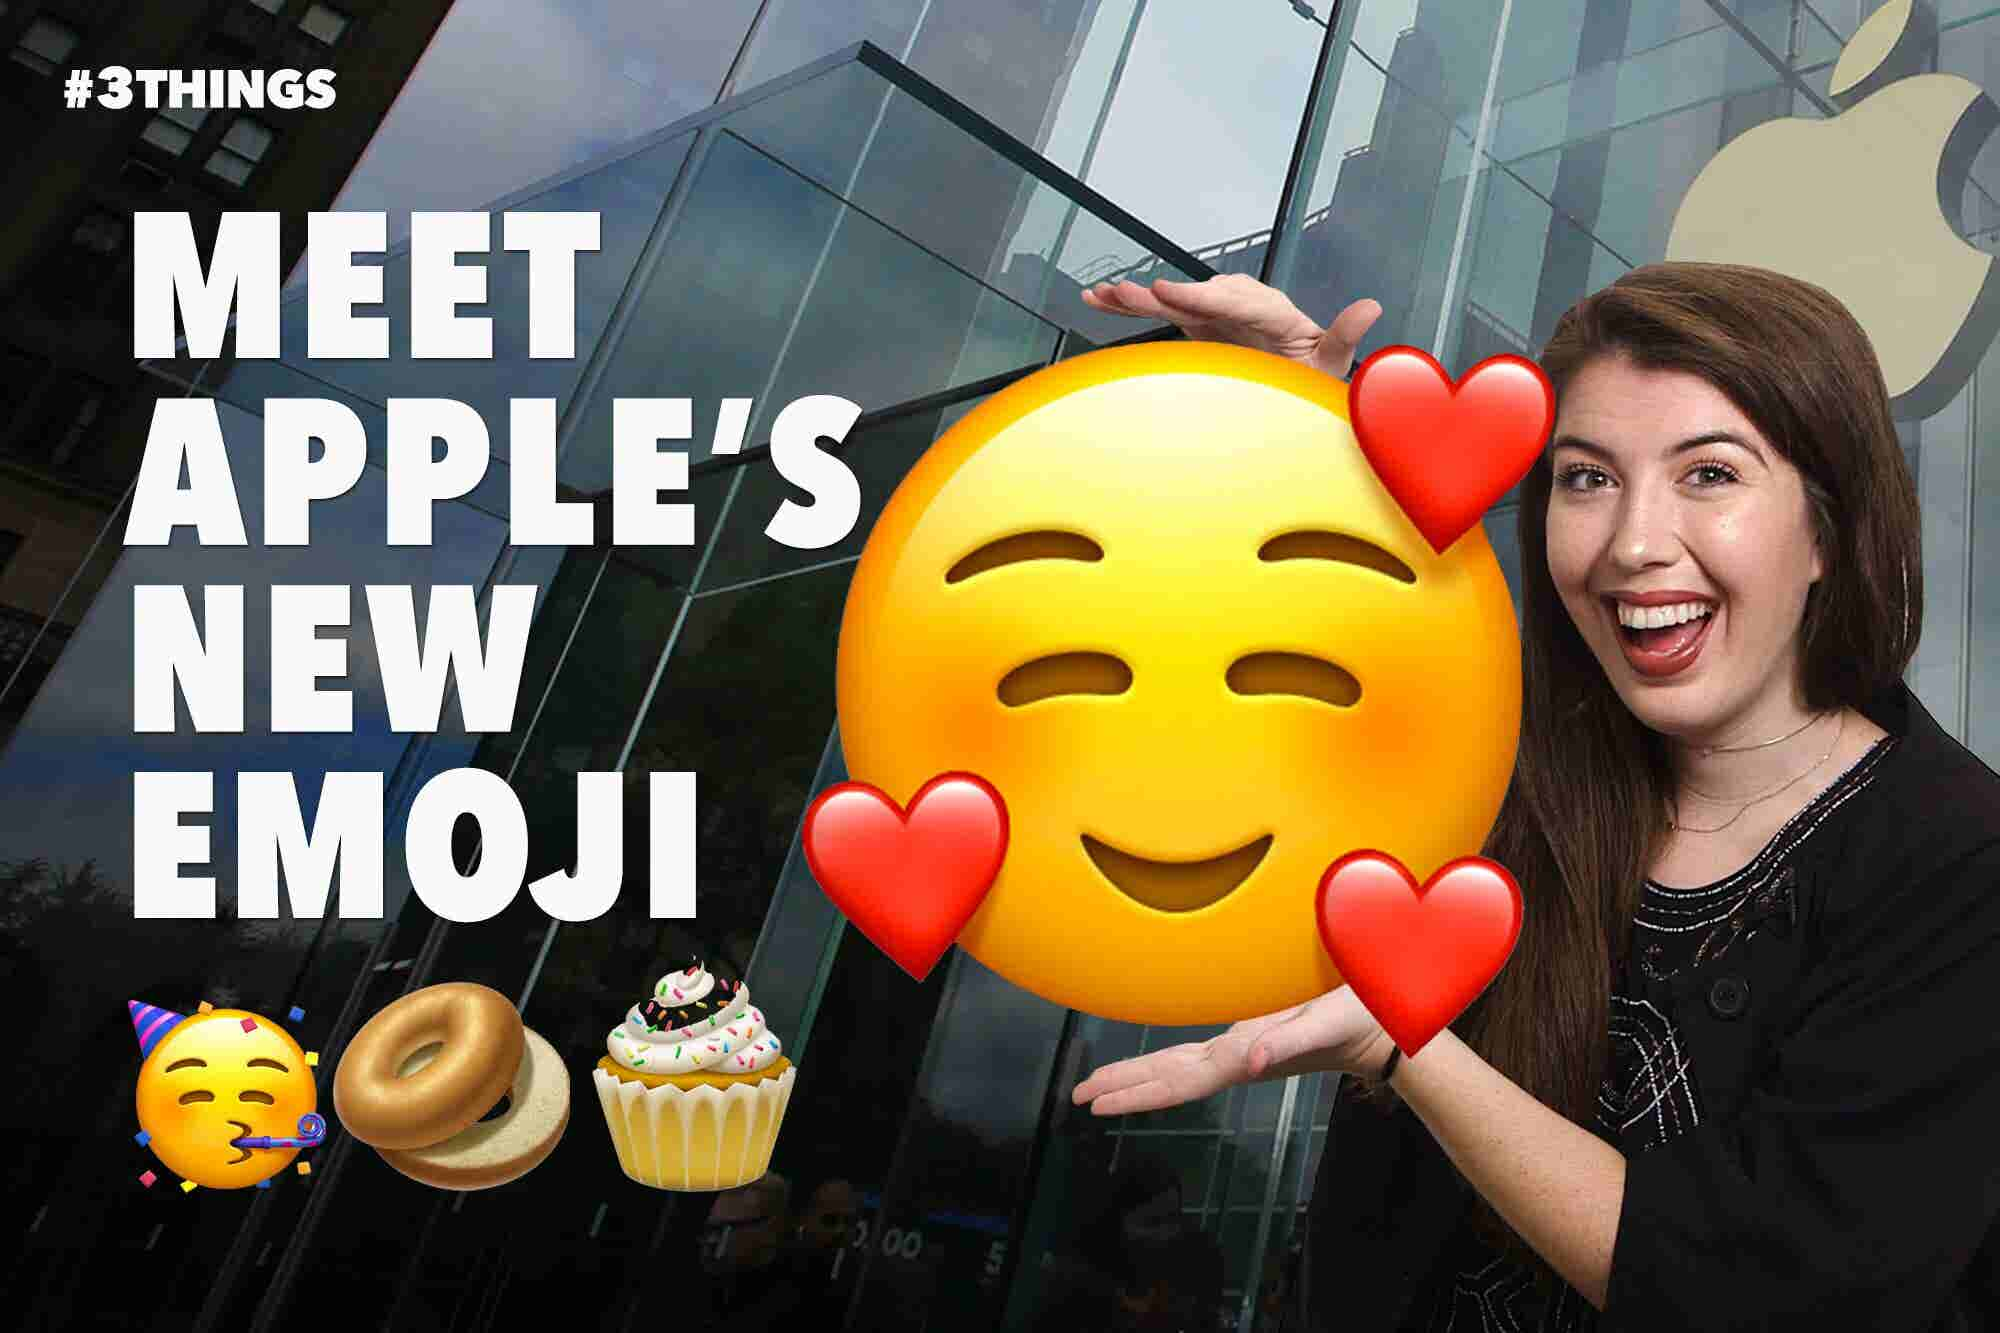 Meet Apple's New Emoji. 3 Things to Know Today.